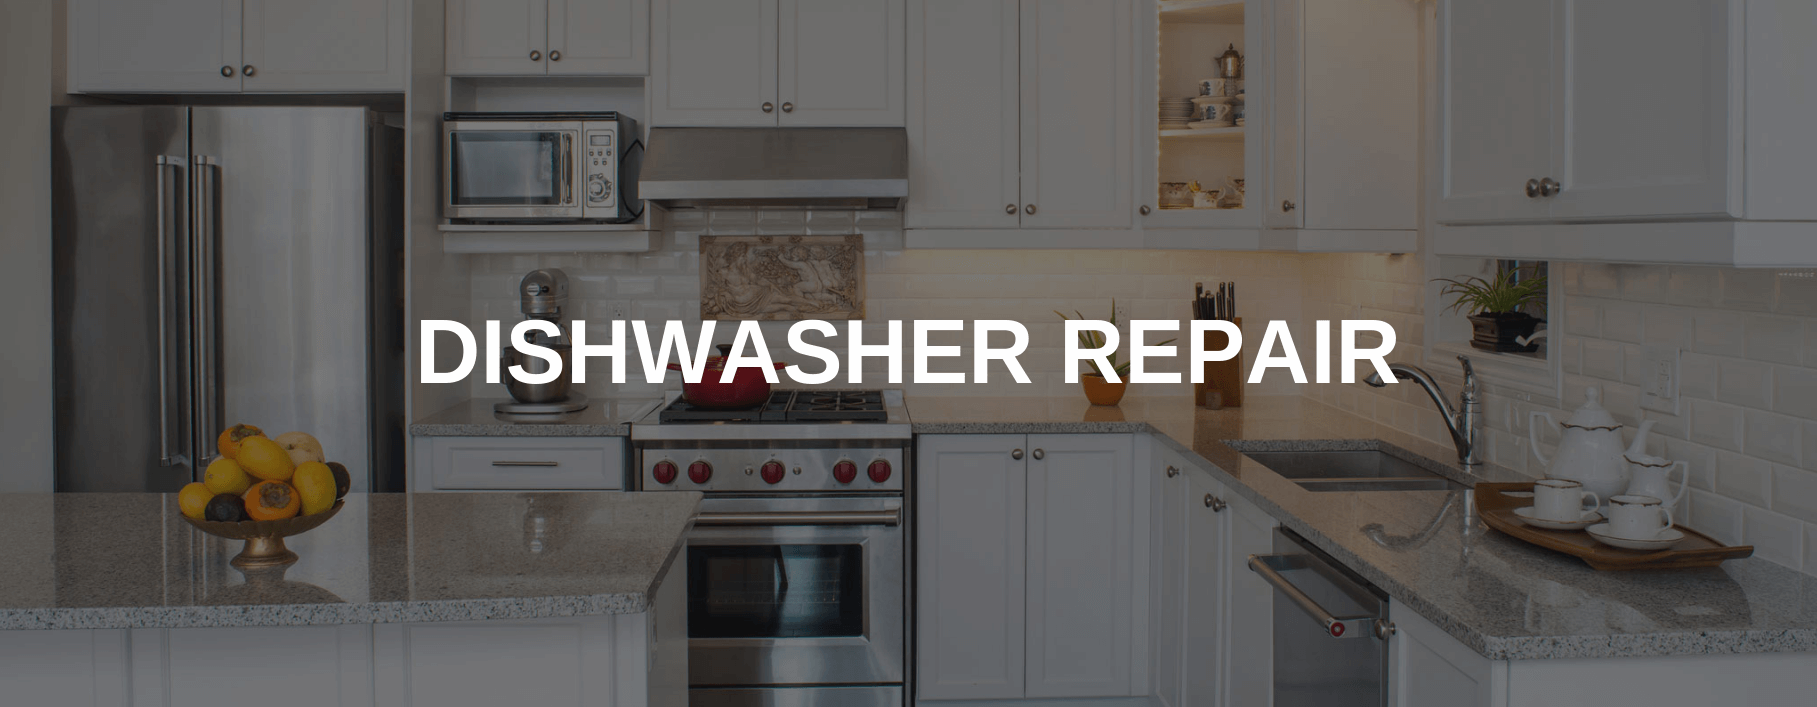 dishwasher repair illinois